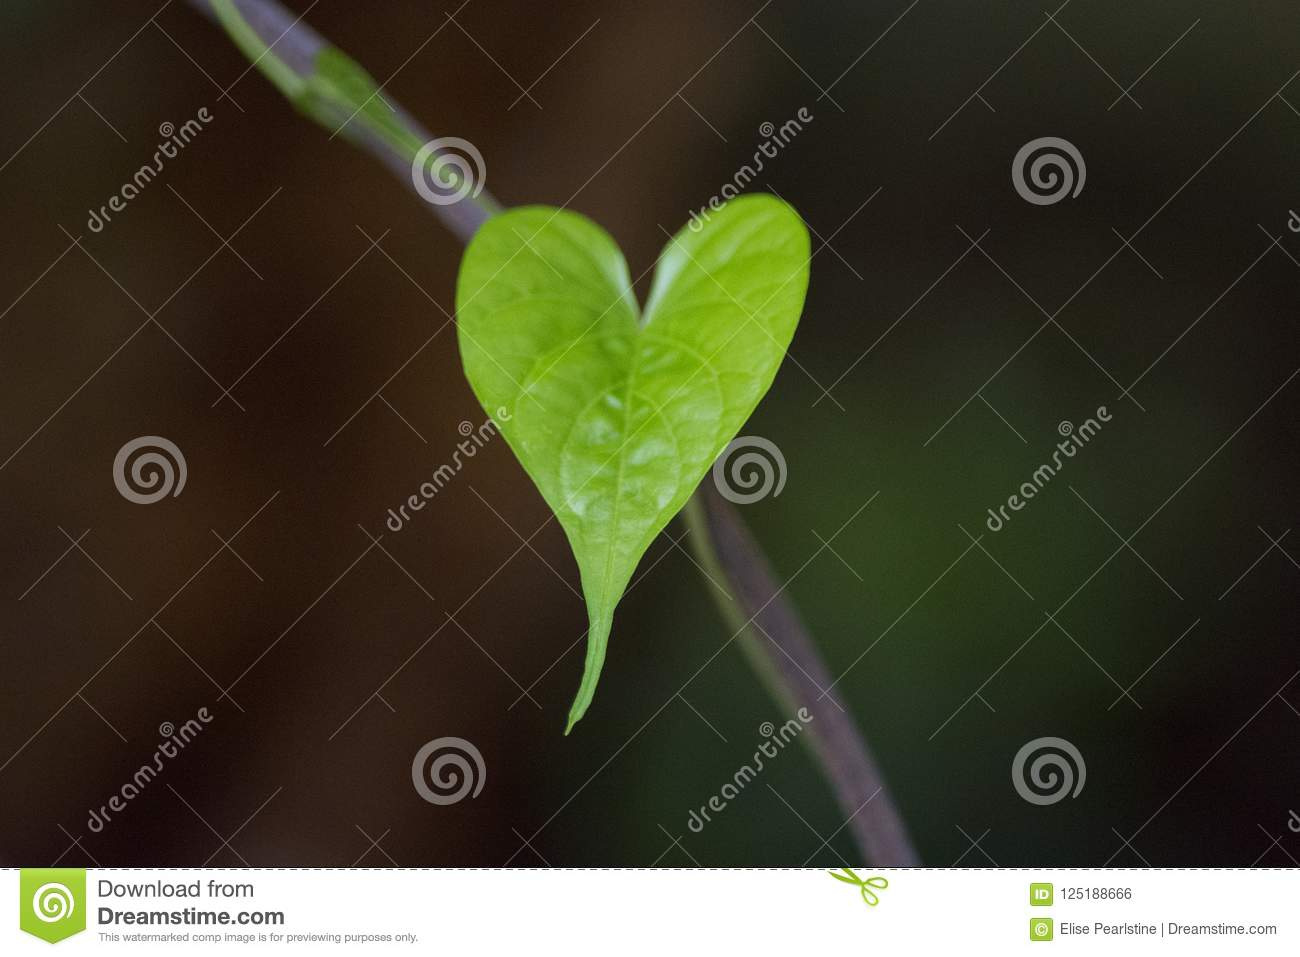 Heart Shaped Leaf Of A Moon Vine A Perennial Climbing Vine With